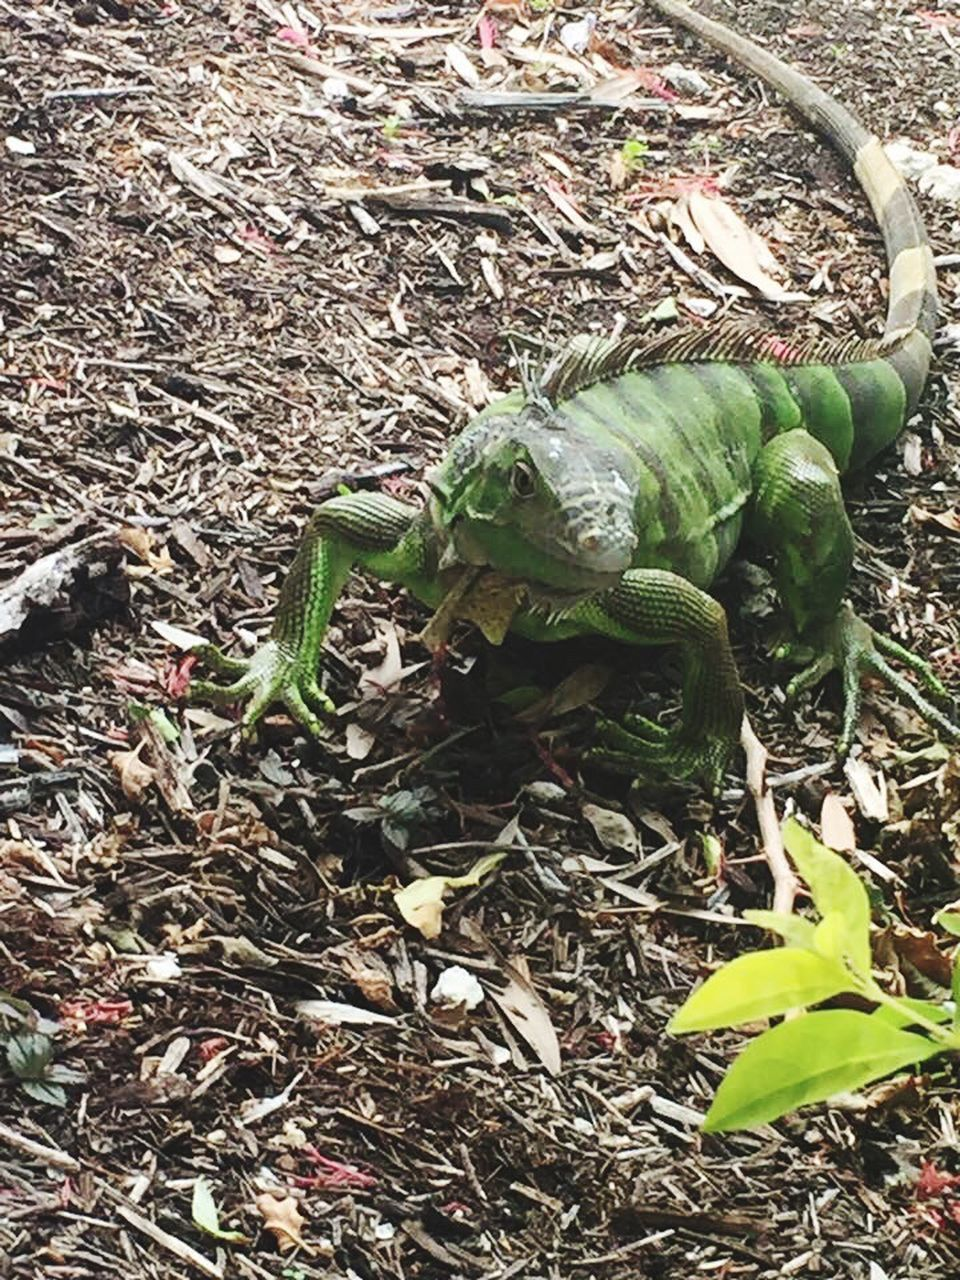 animal themes, high angle view, day, no people, one animal, animals in the wild, green color, leaf, reptile, outdoors, nature, close-up, mammal